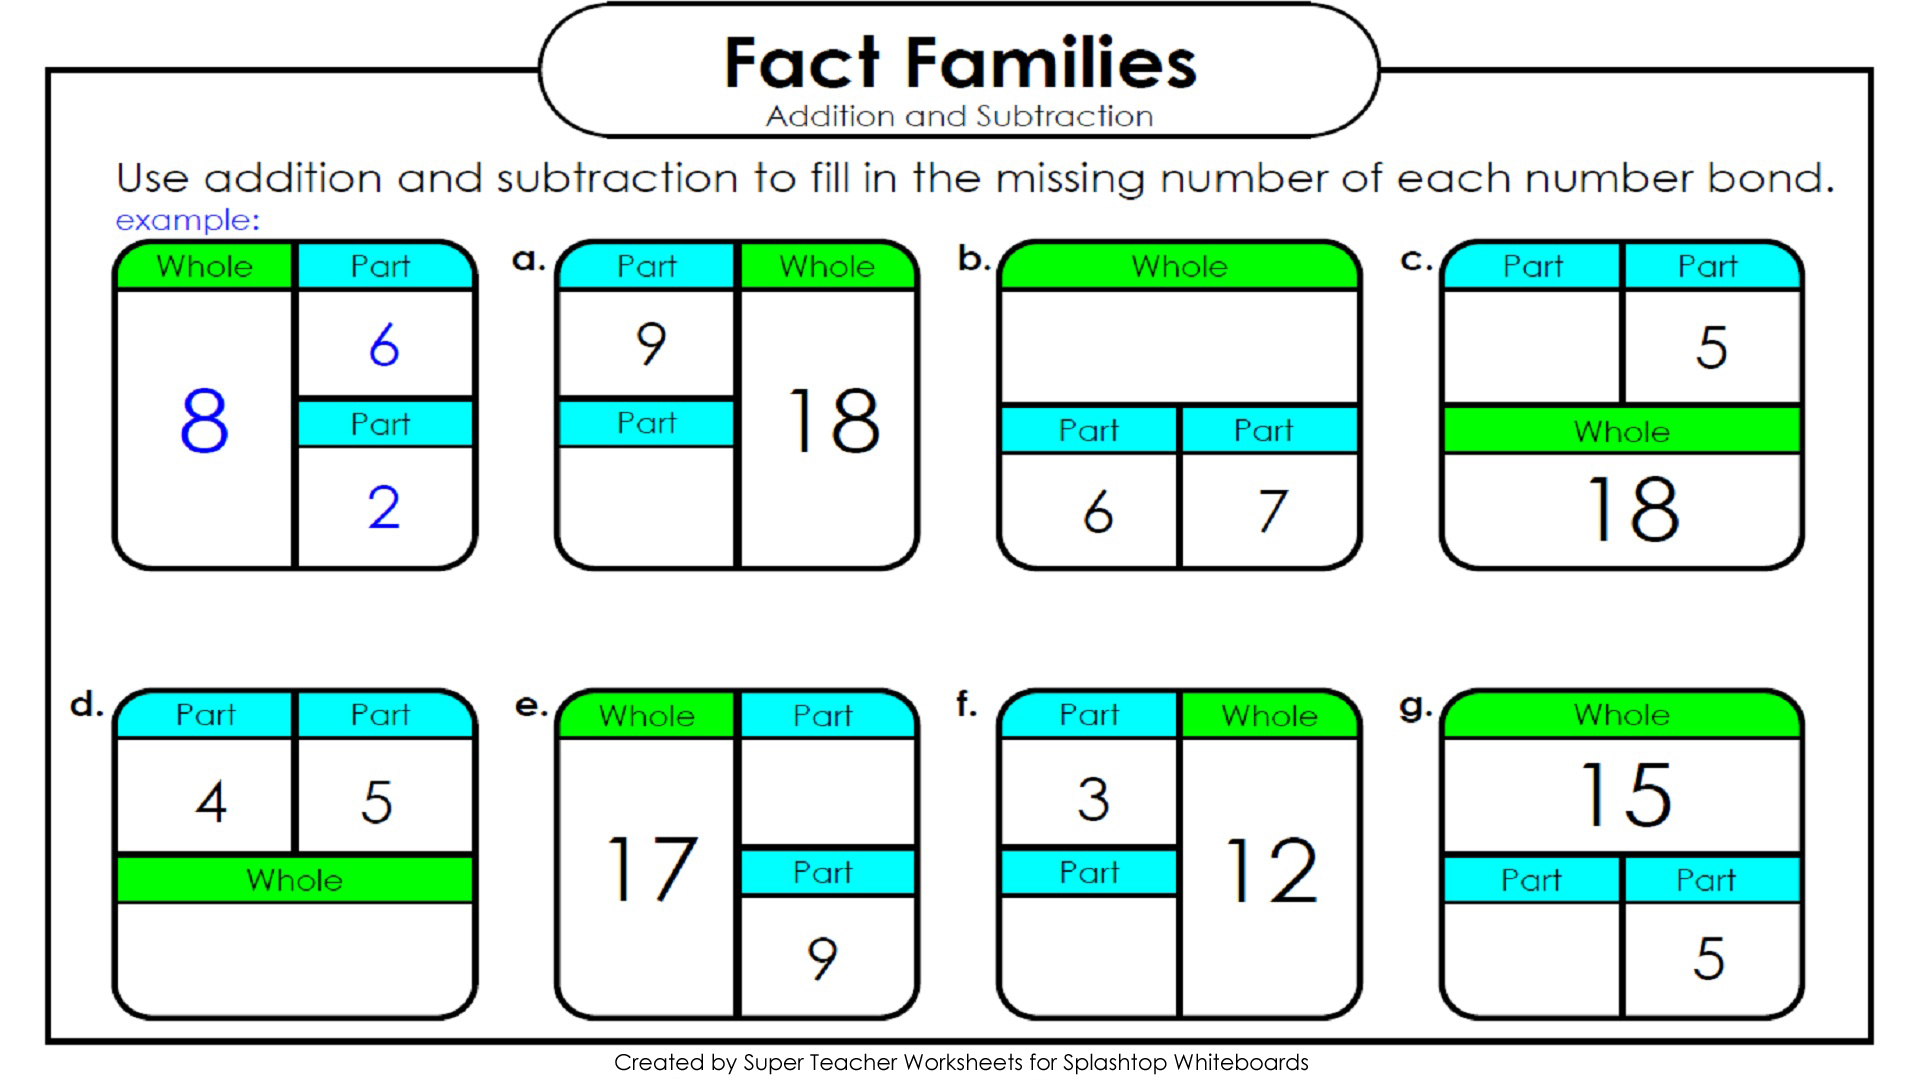 Multiplication And Division Fact Families Worksheets For 3rd Grade – Division Fact Family Worksheets